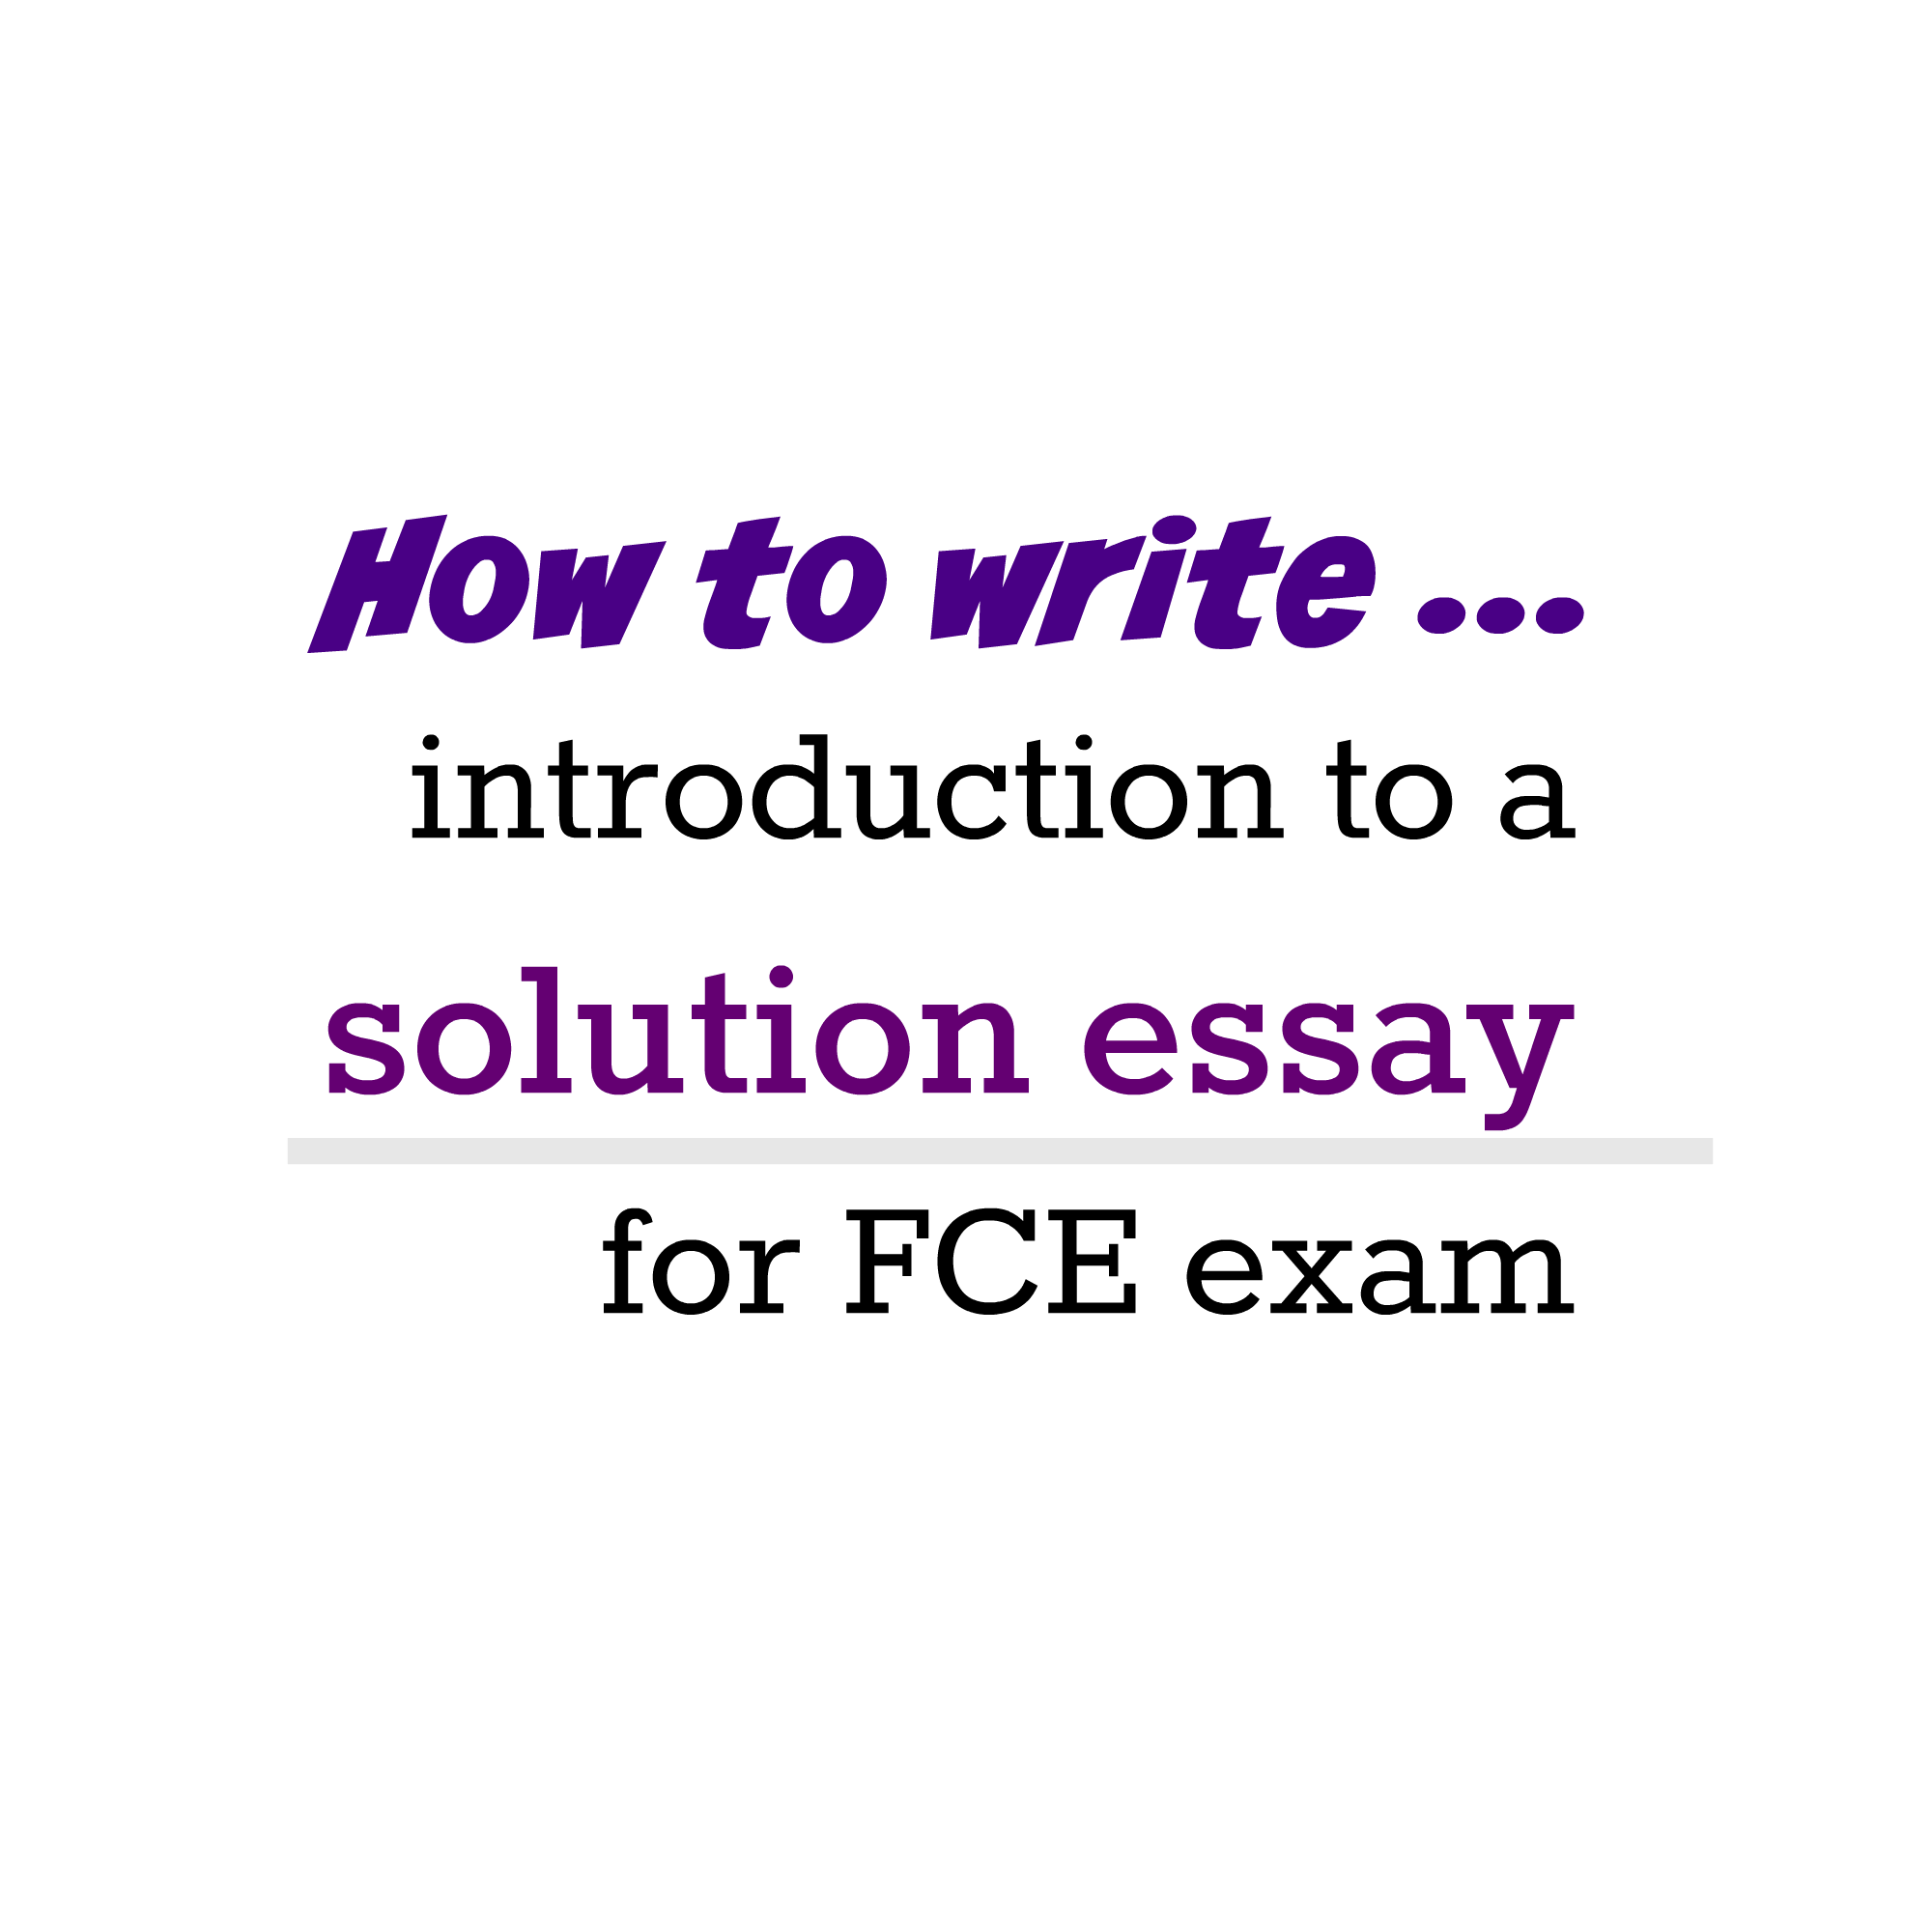 how to write the introduction to a solution essay for fce exam how to write the introduction to a solution essay for fce exam english exam help